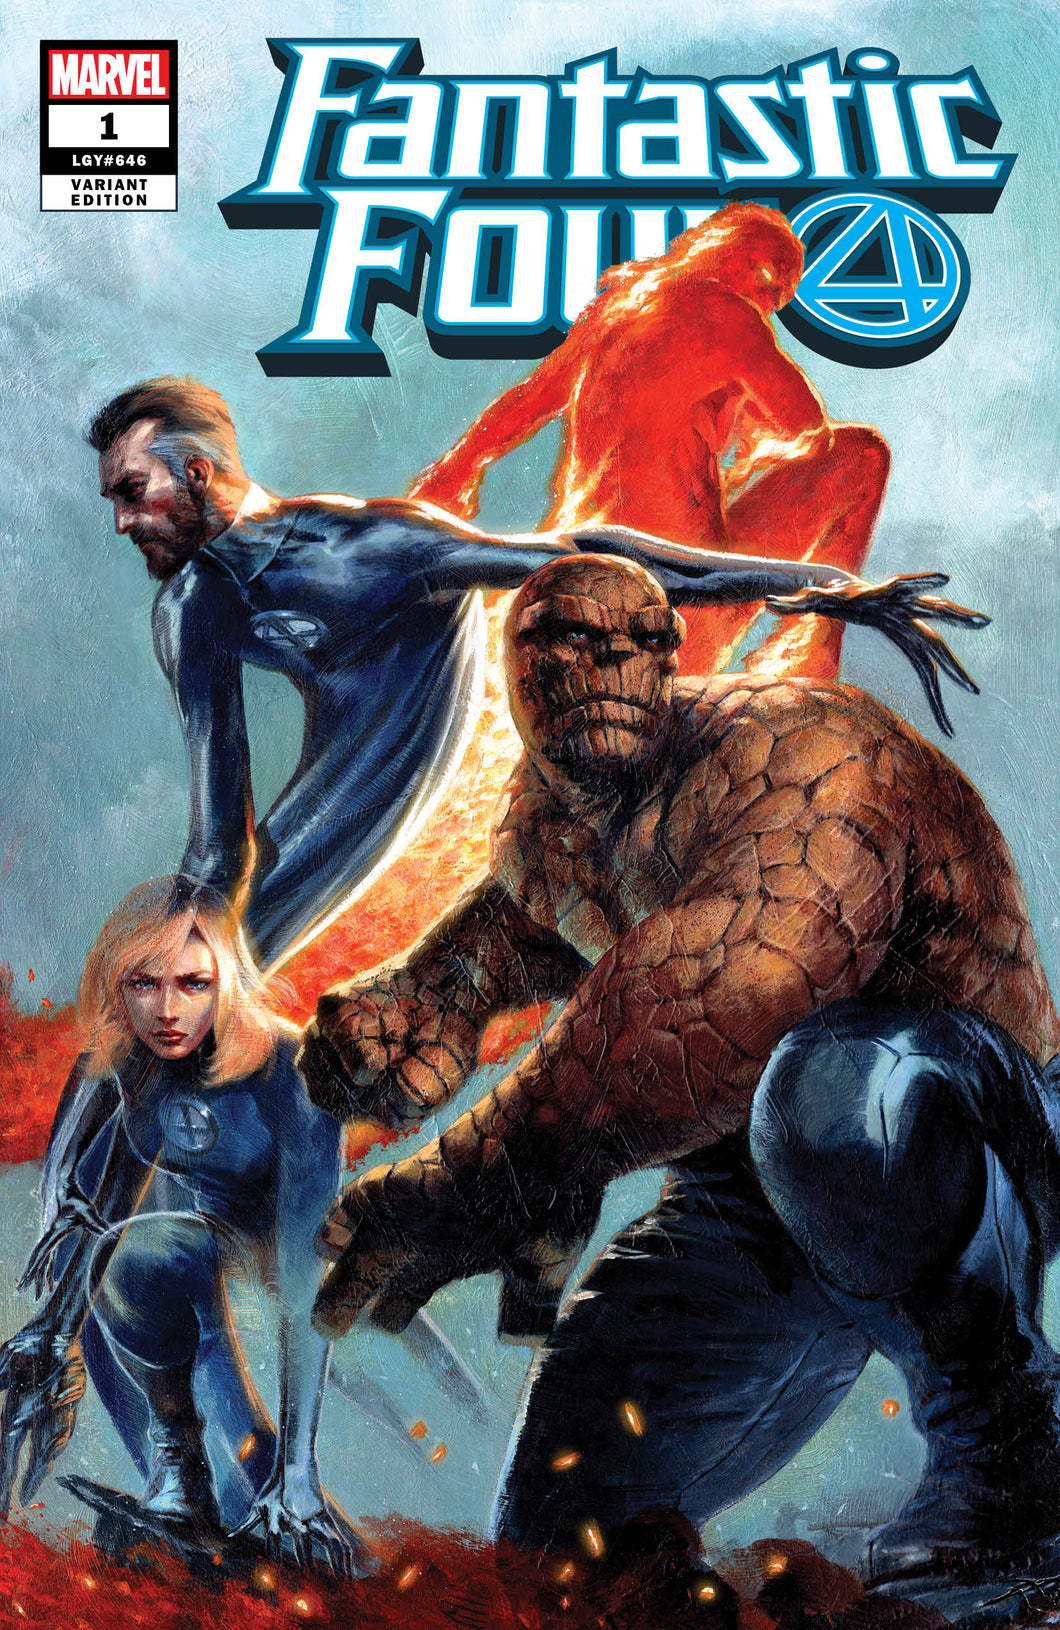 Fantastic Four #1 Dell'Otto Variant